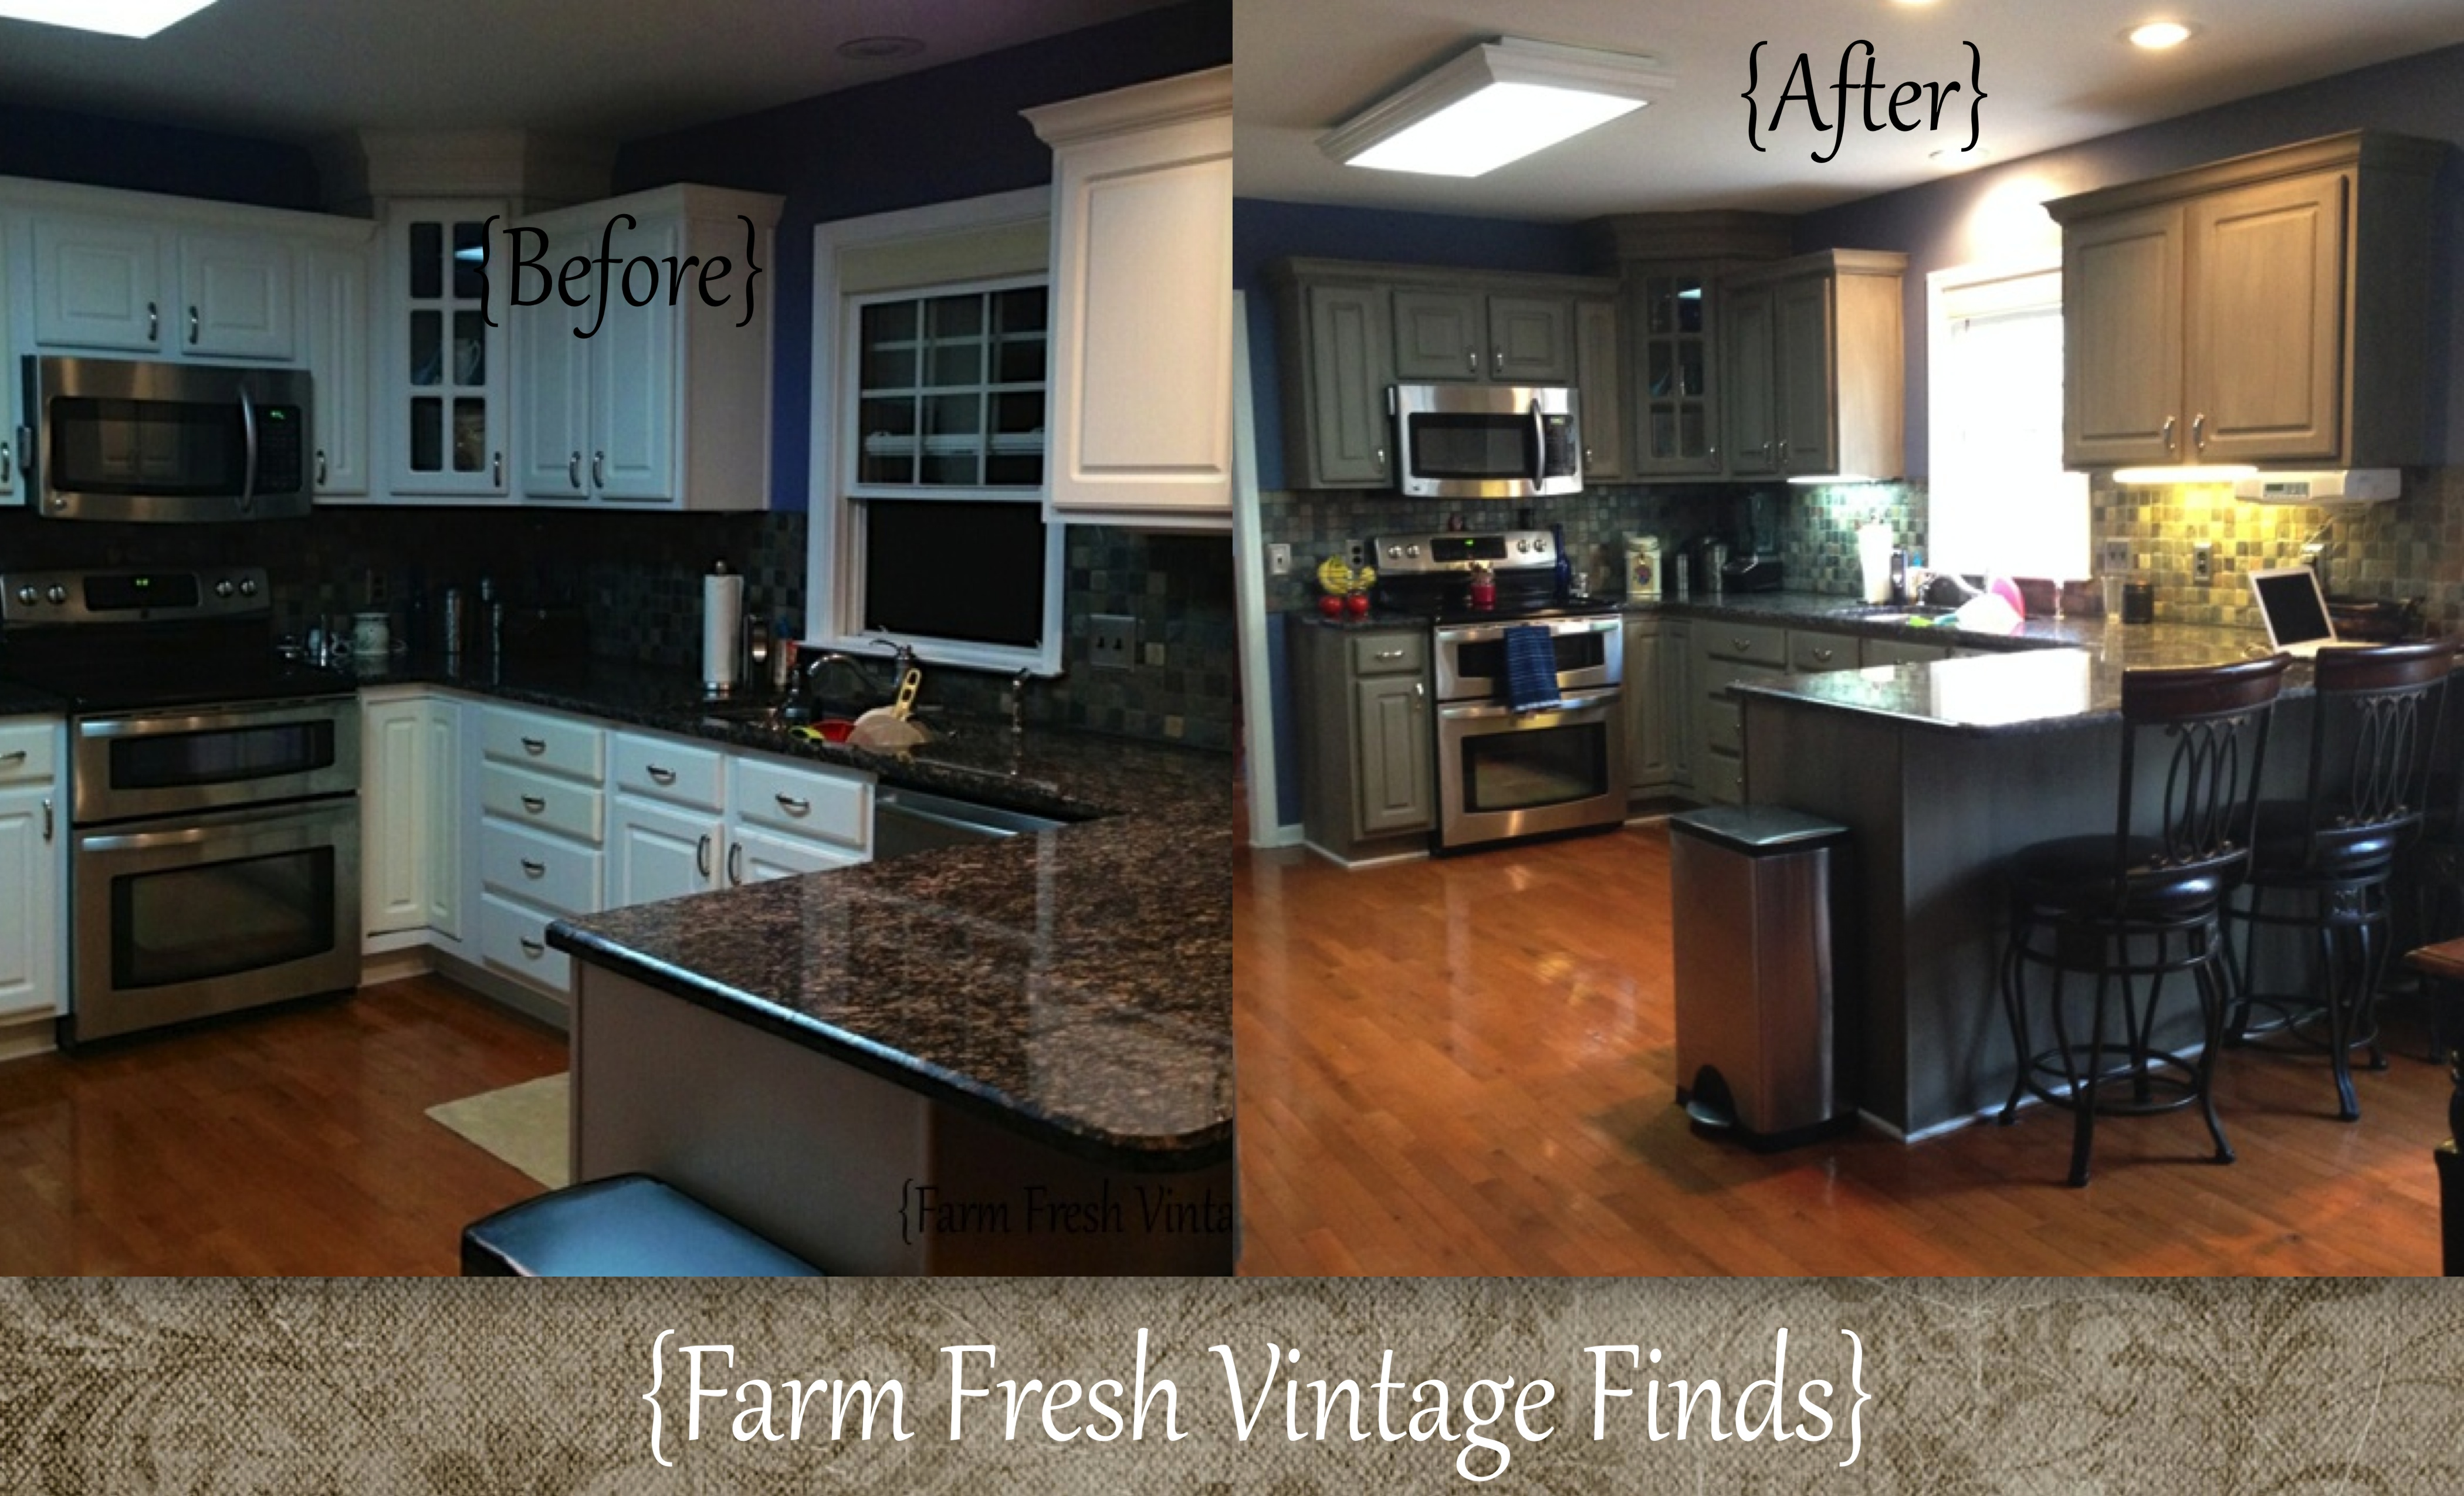 Painting Thermofoil Kitchen Cabinets The Big Reveal Farm Fresh Vintage Finds